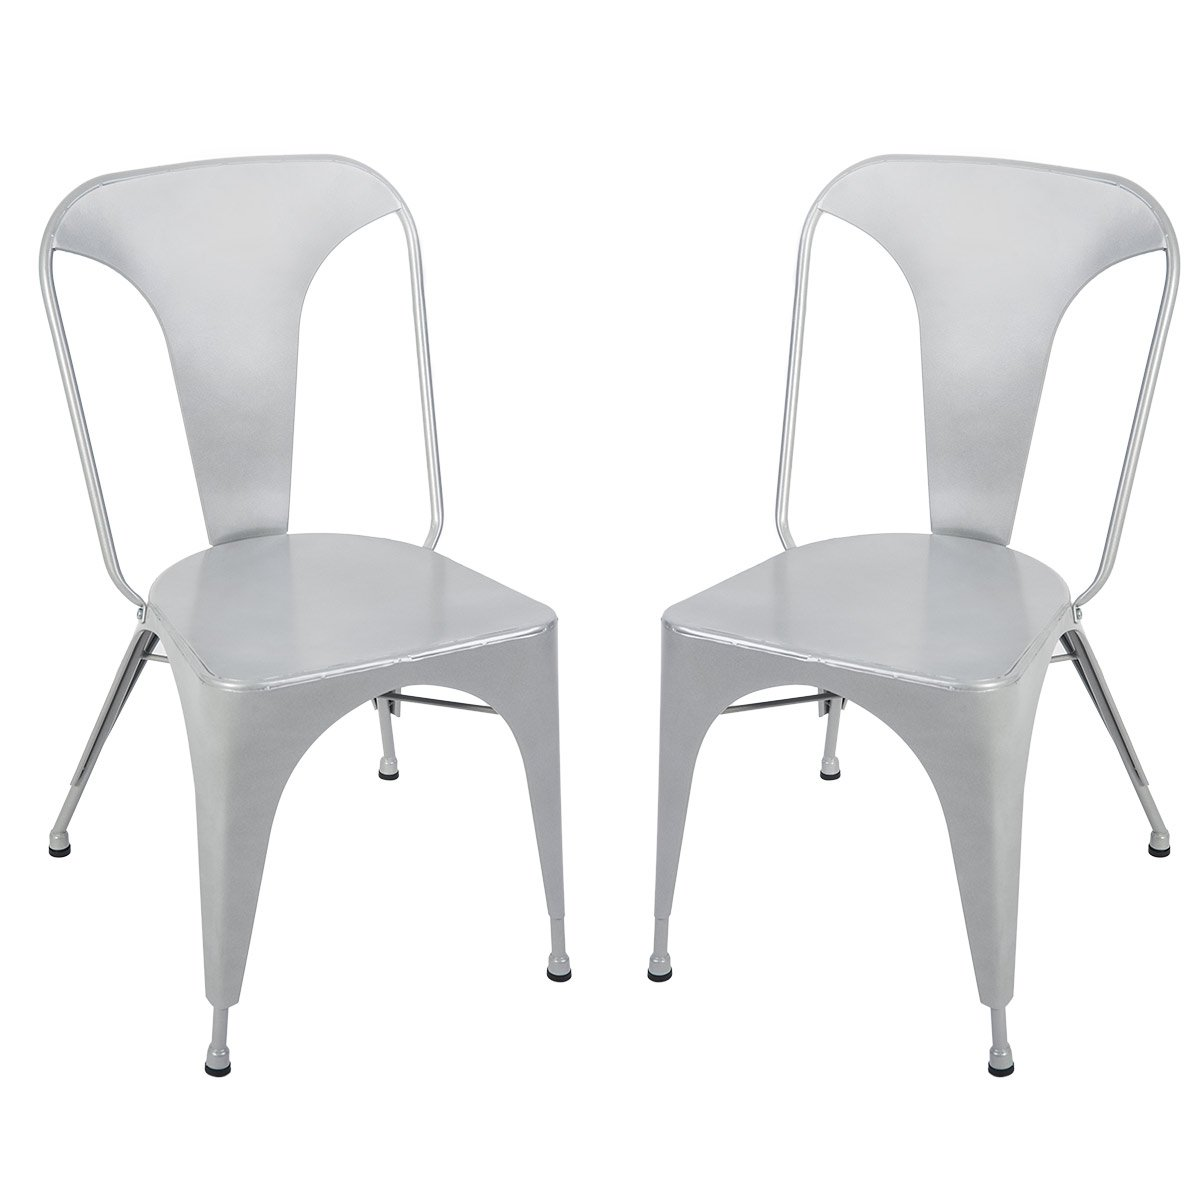 Metal Dining Chair Chic Dining Bistro Cafe Side Metal Chairs Set of 2 for Indoor Outdoor Use(Silver)